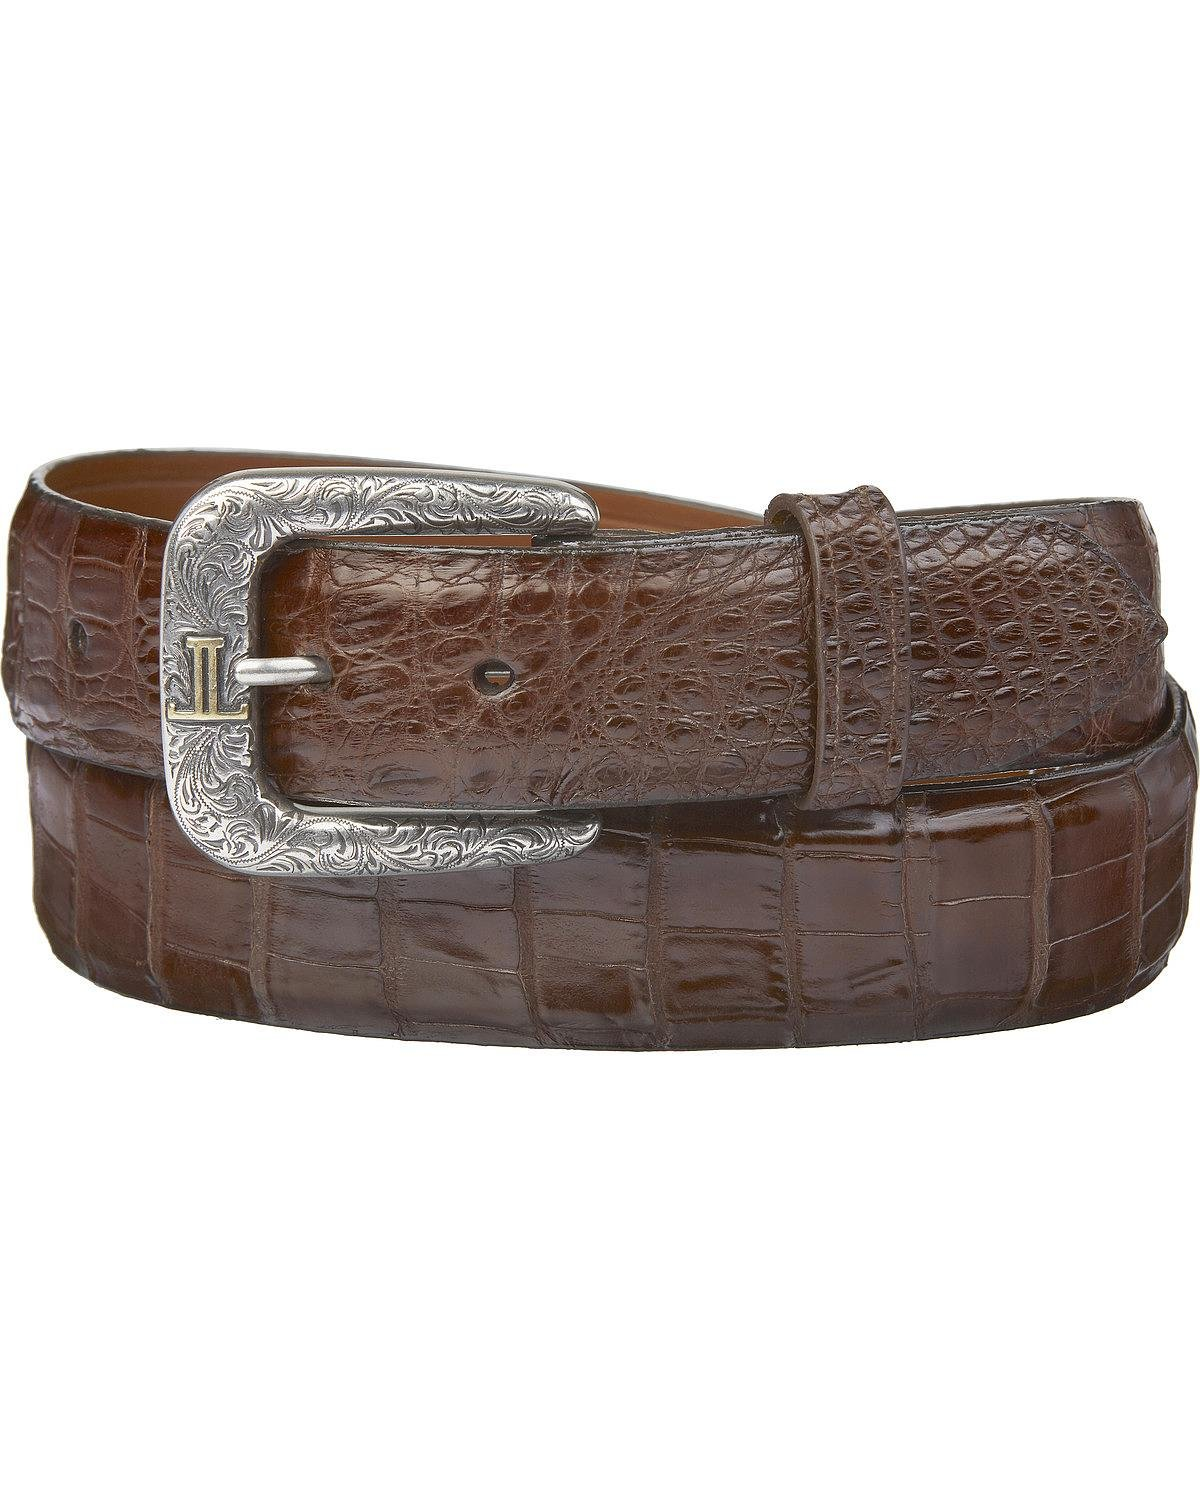 Lucchese Men's Sienna Caiman Ultra Belly Leather Belt Sienna 40